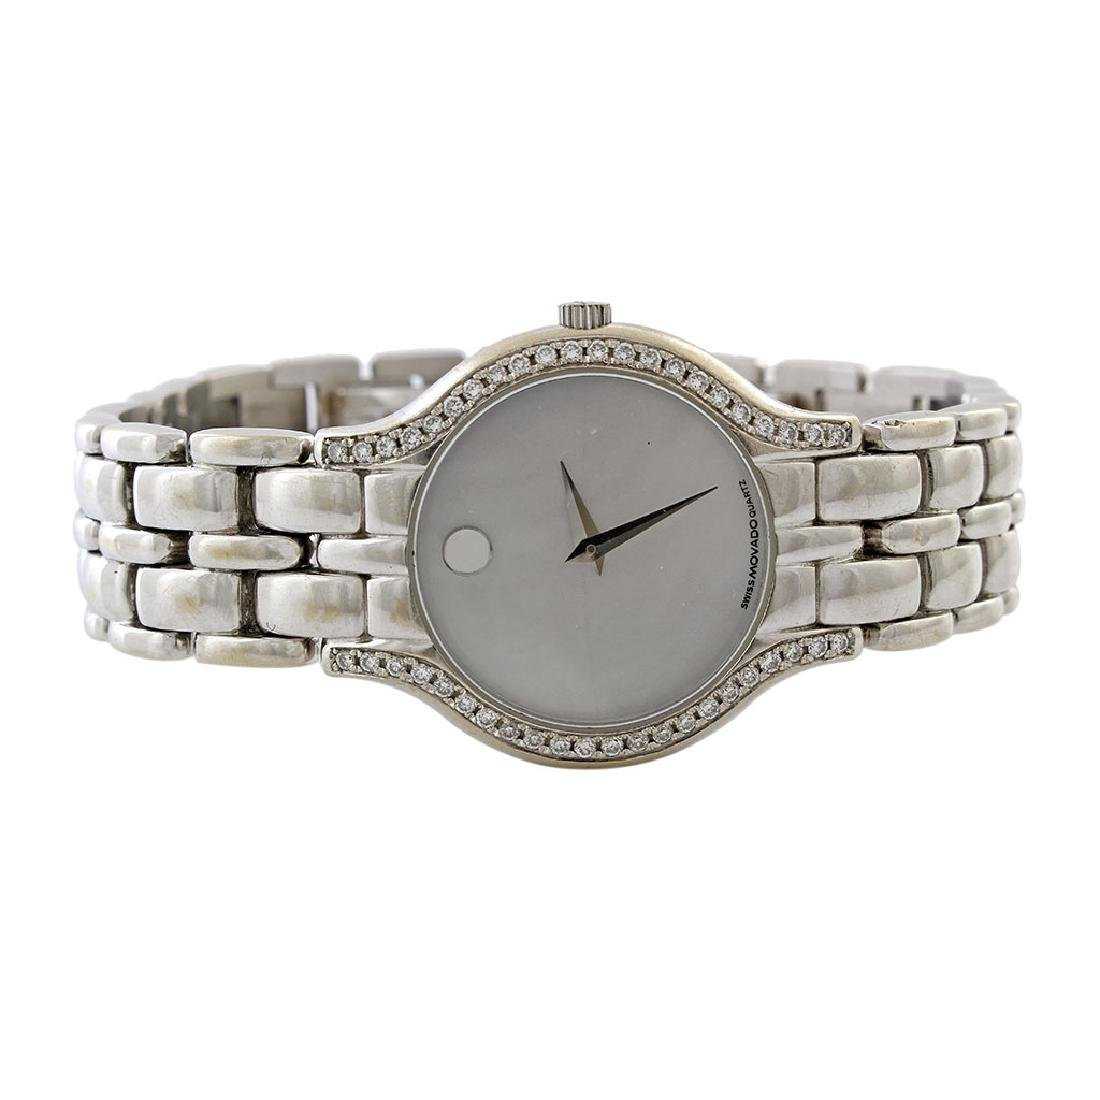 Movado Diamond & Mother of Pearl 18K Gold Watch